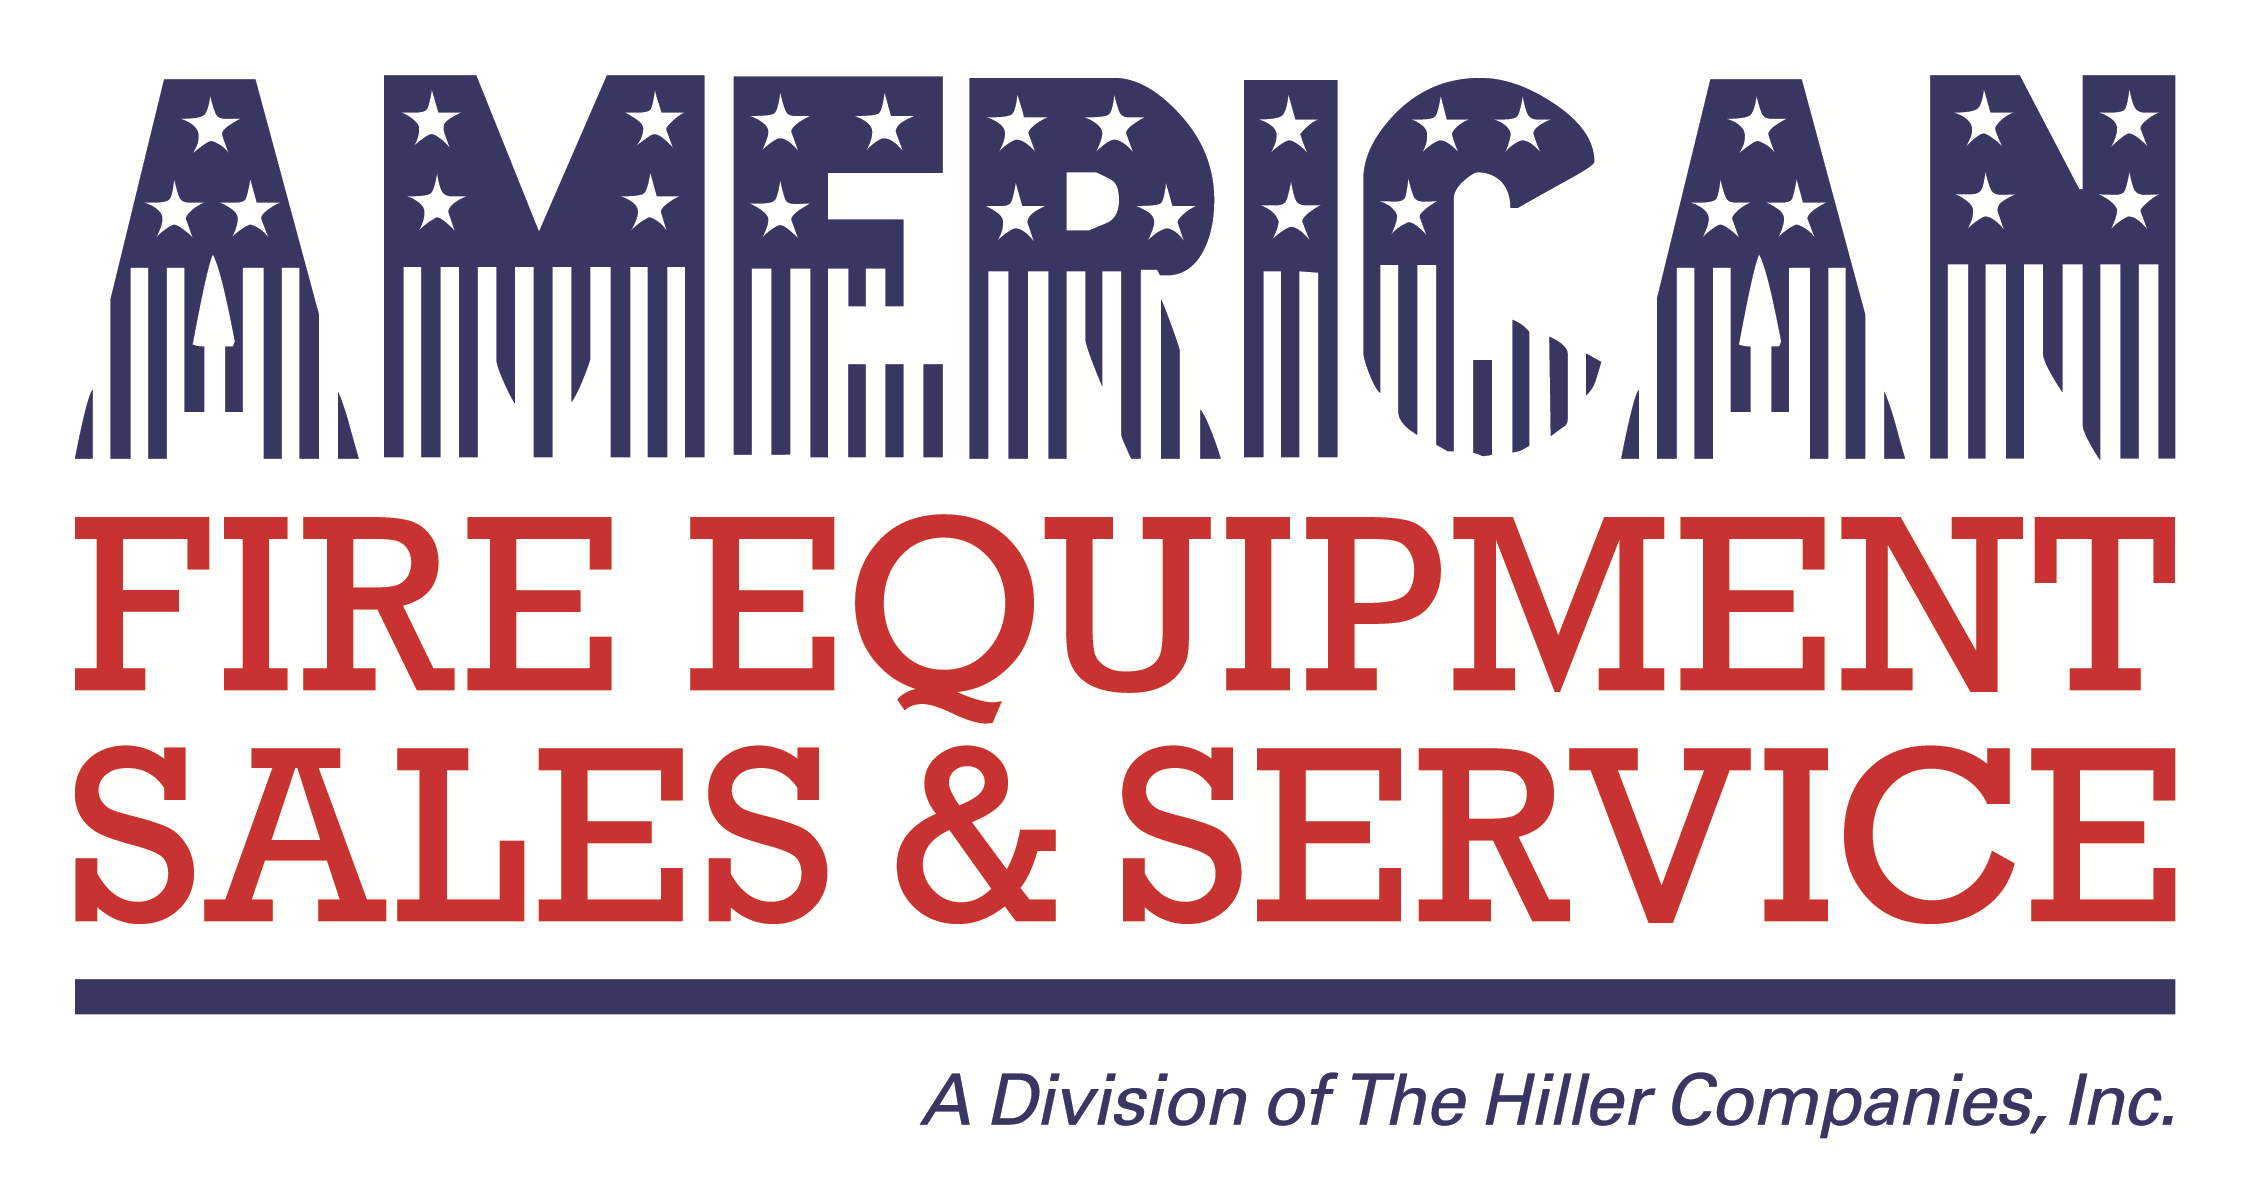 American Fire Equipment Sales and Service a Div. of The Hiller Companies, Inc. logo